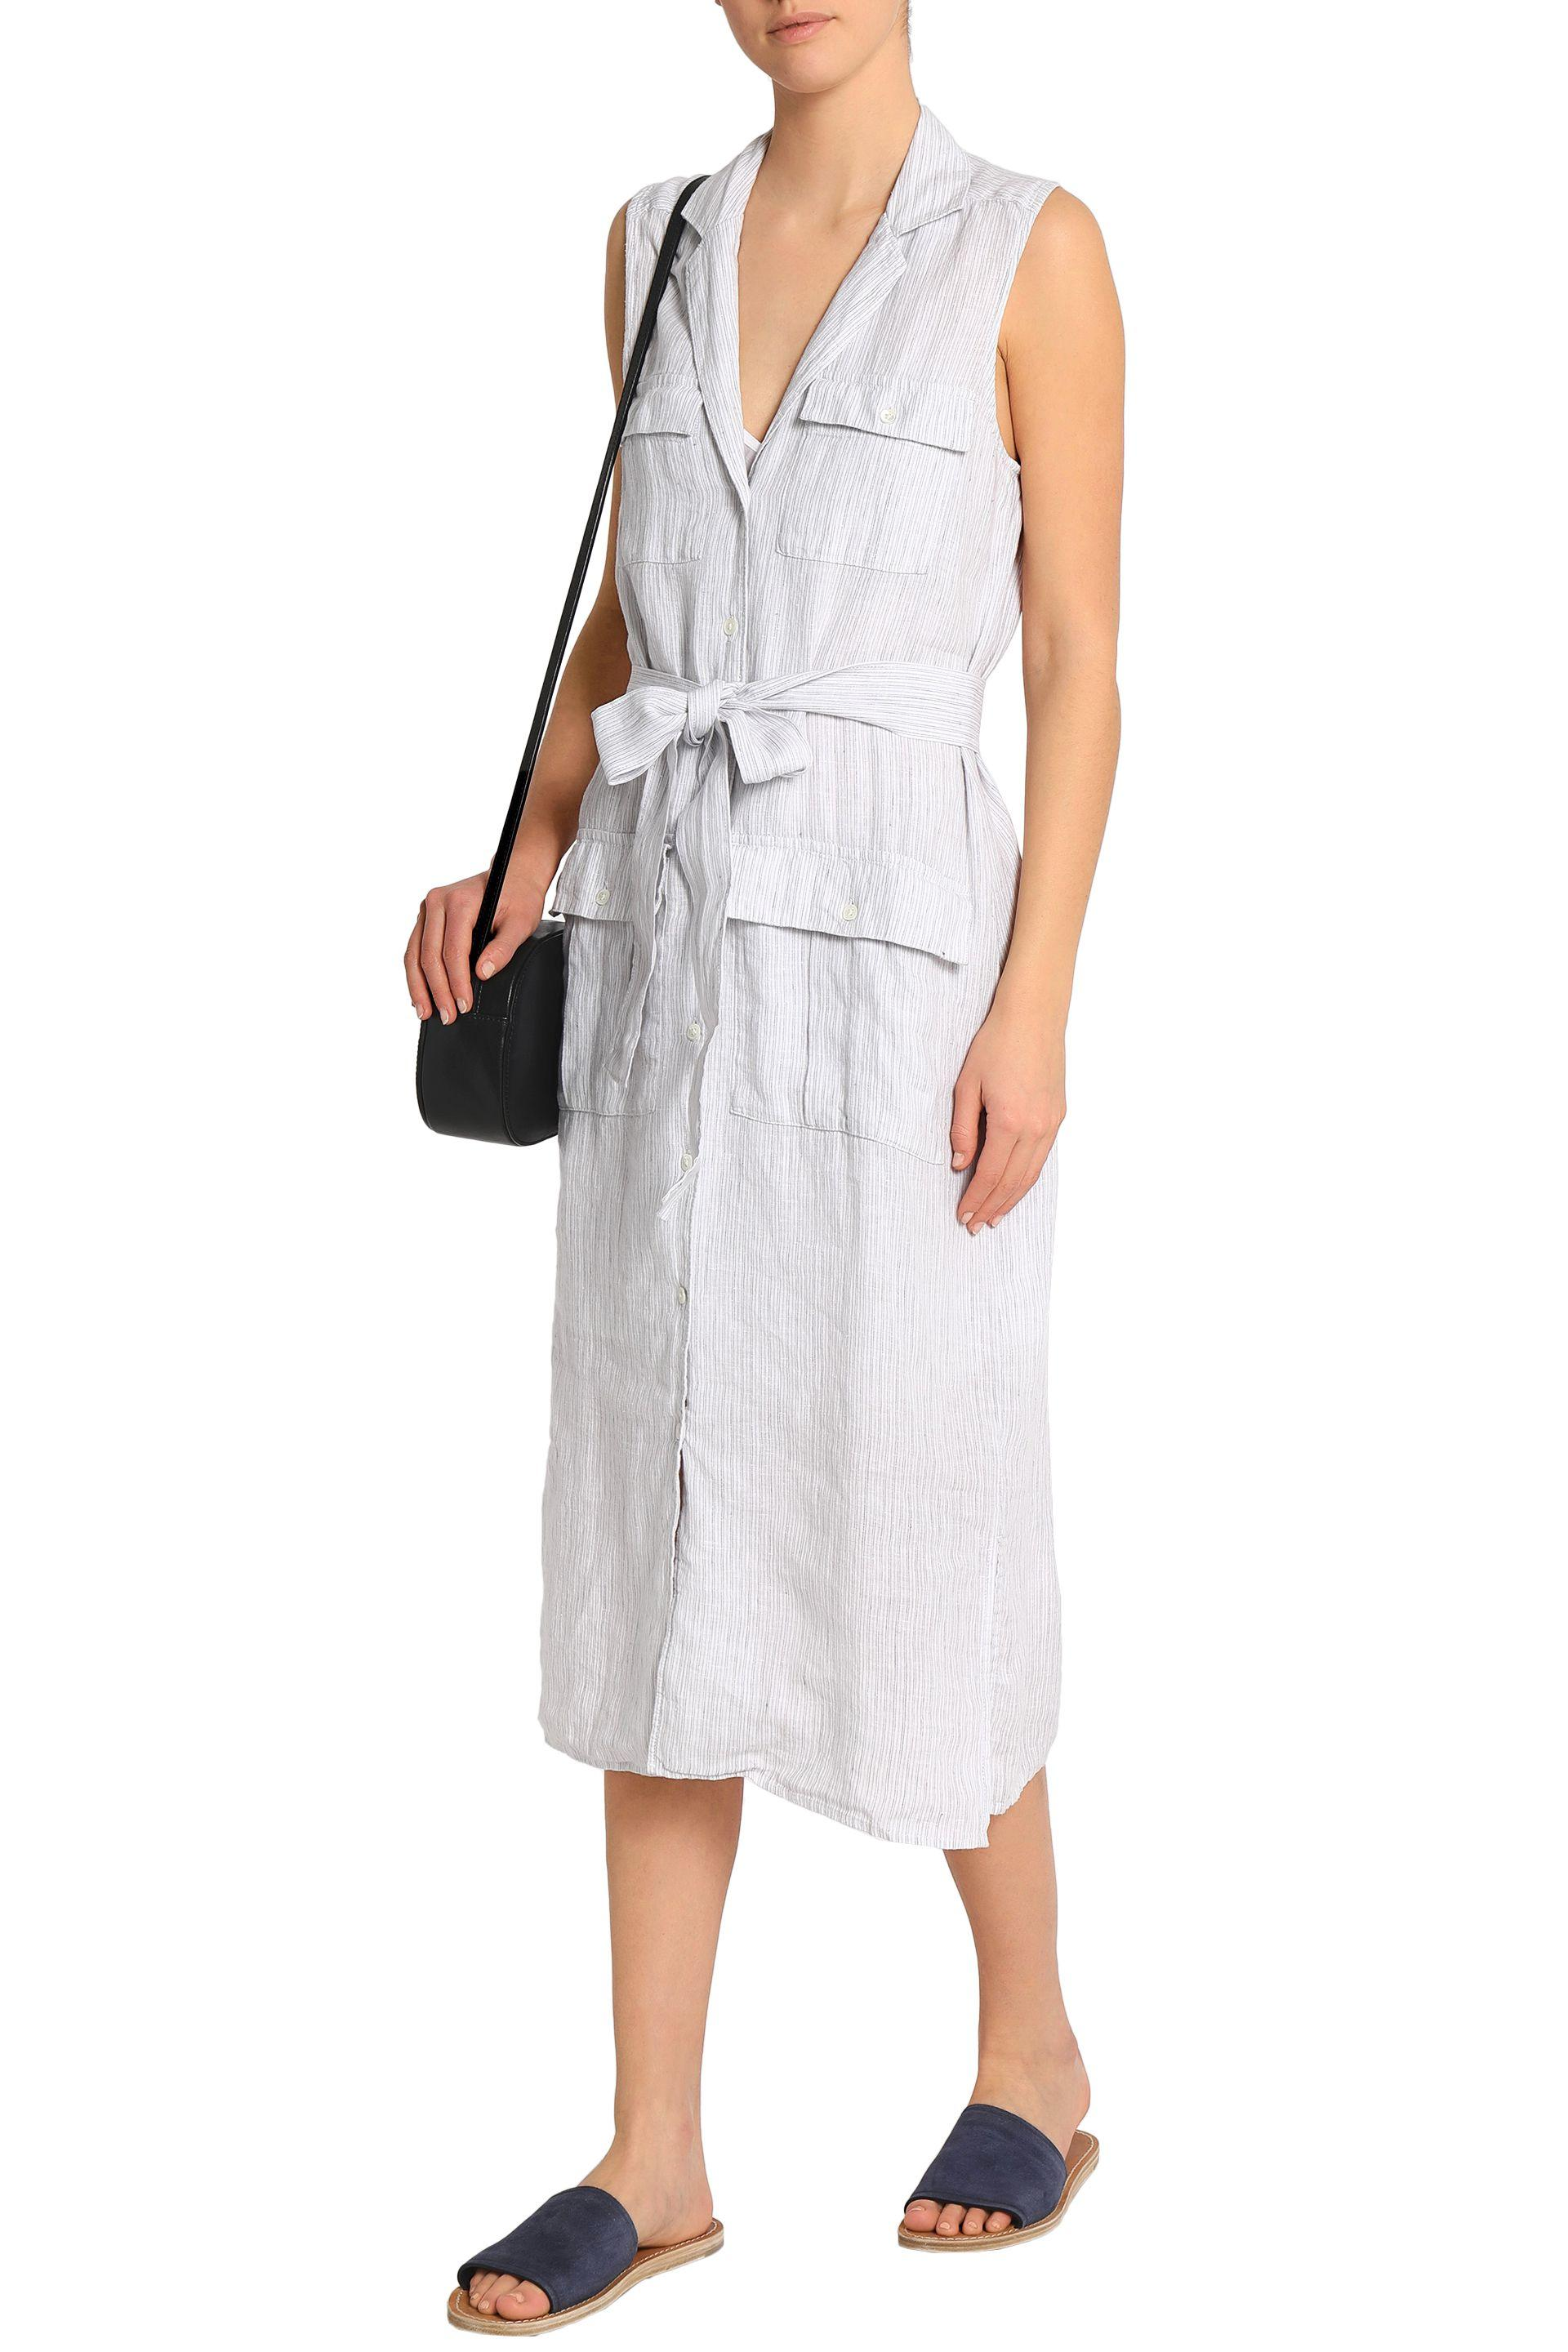 c7ab4dbced James Perse - Woman Striped Linen Shirt Dress Off-white - Lyst. View  fullscreen